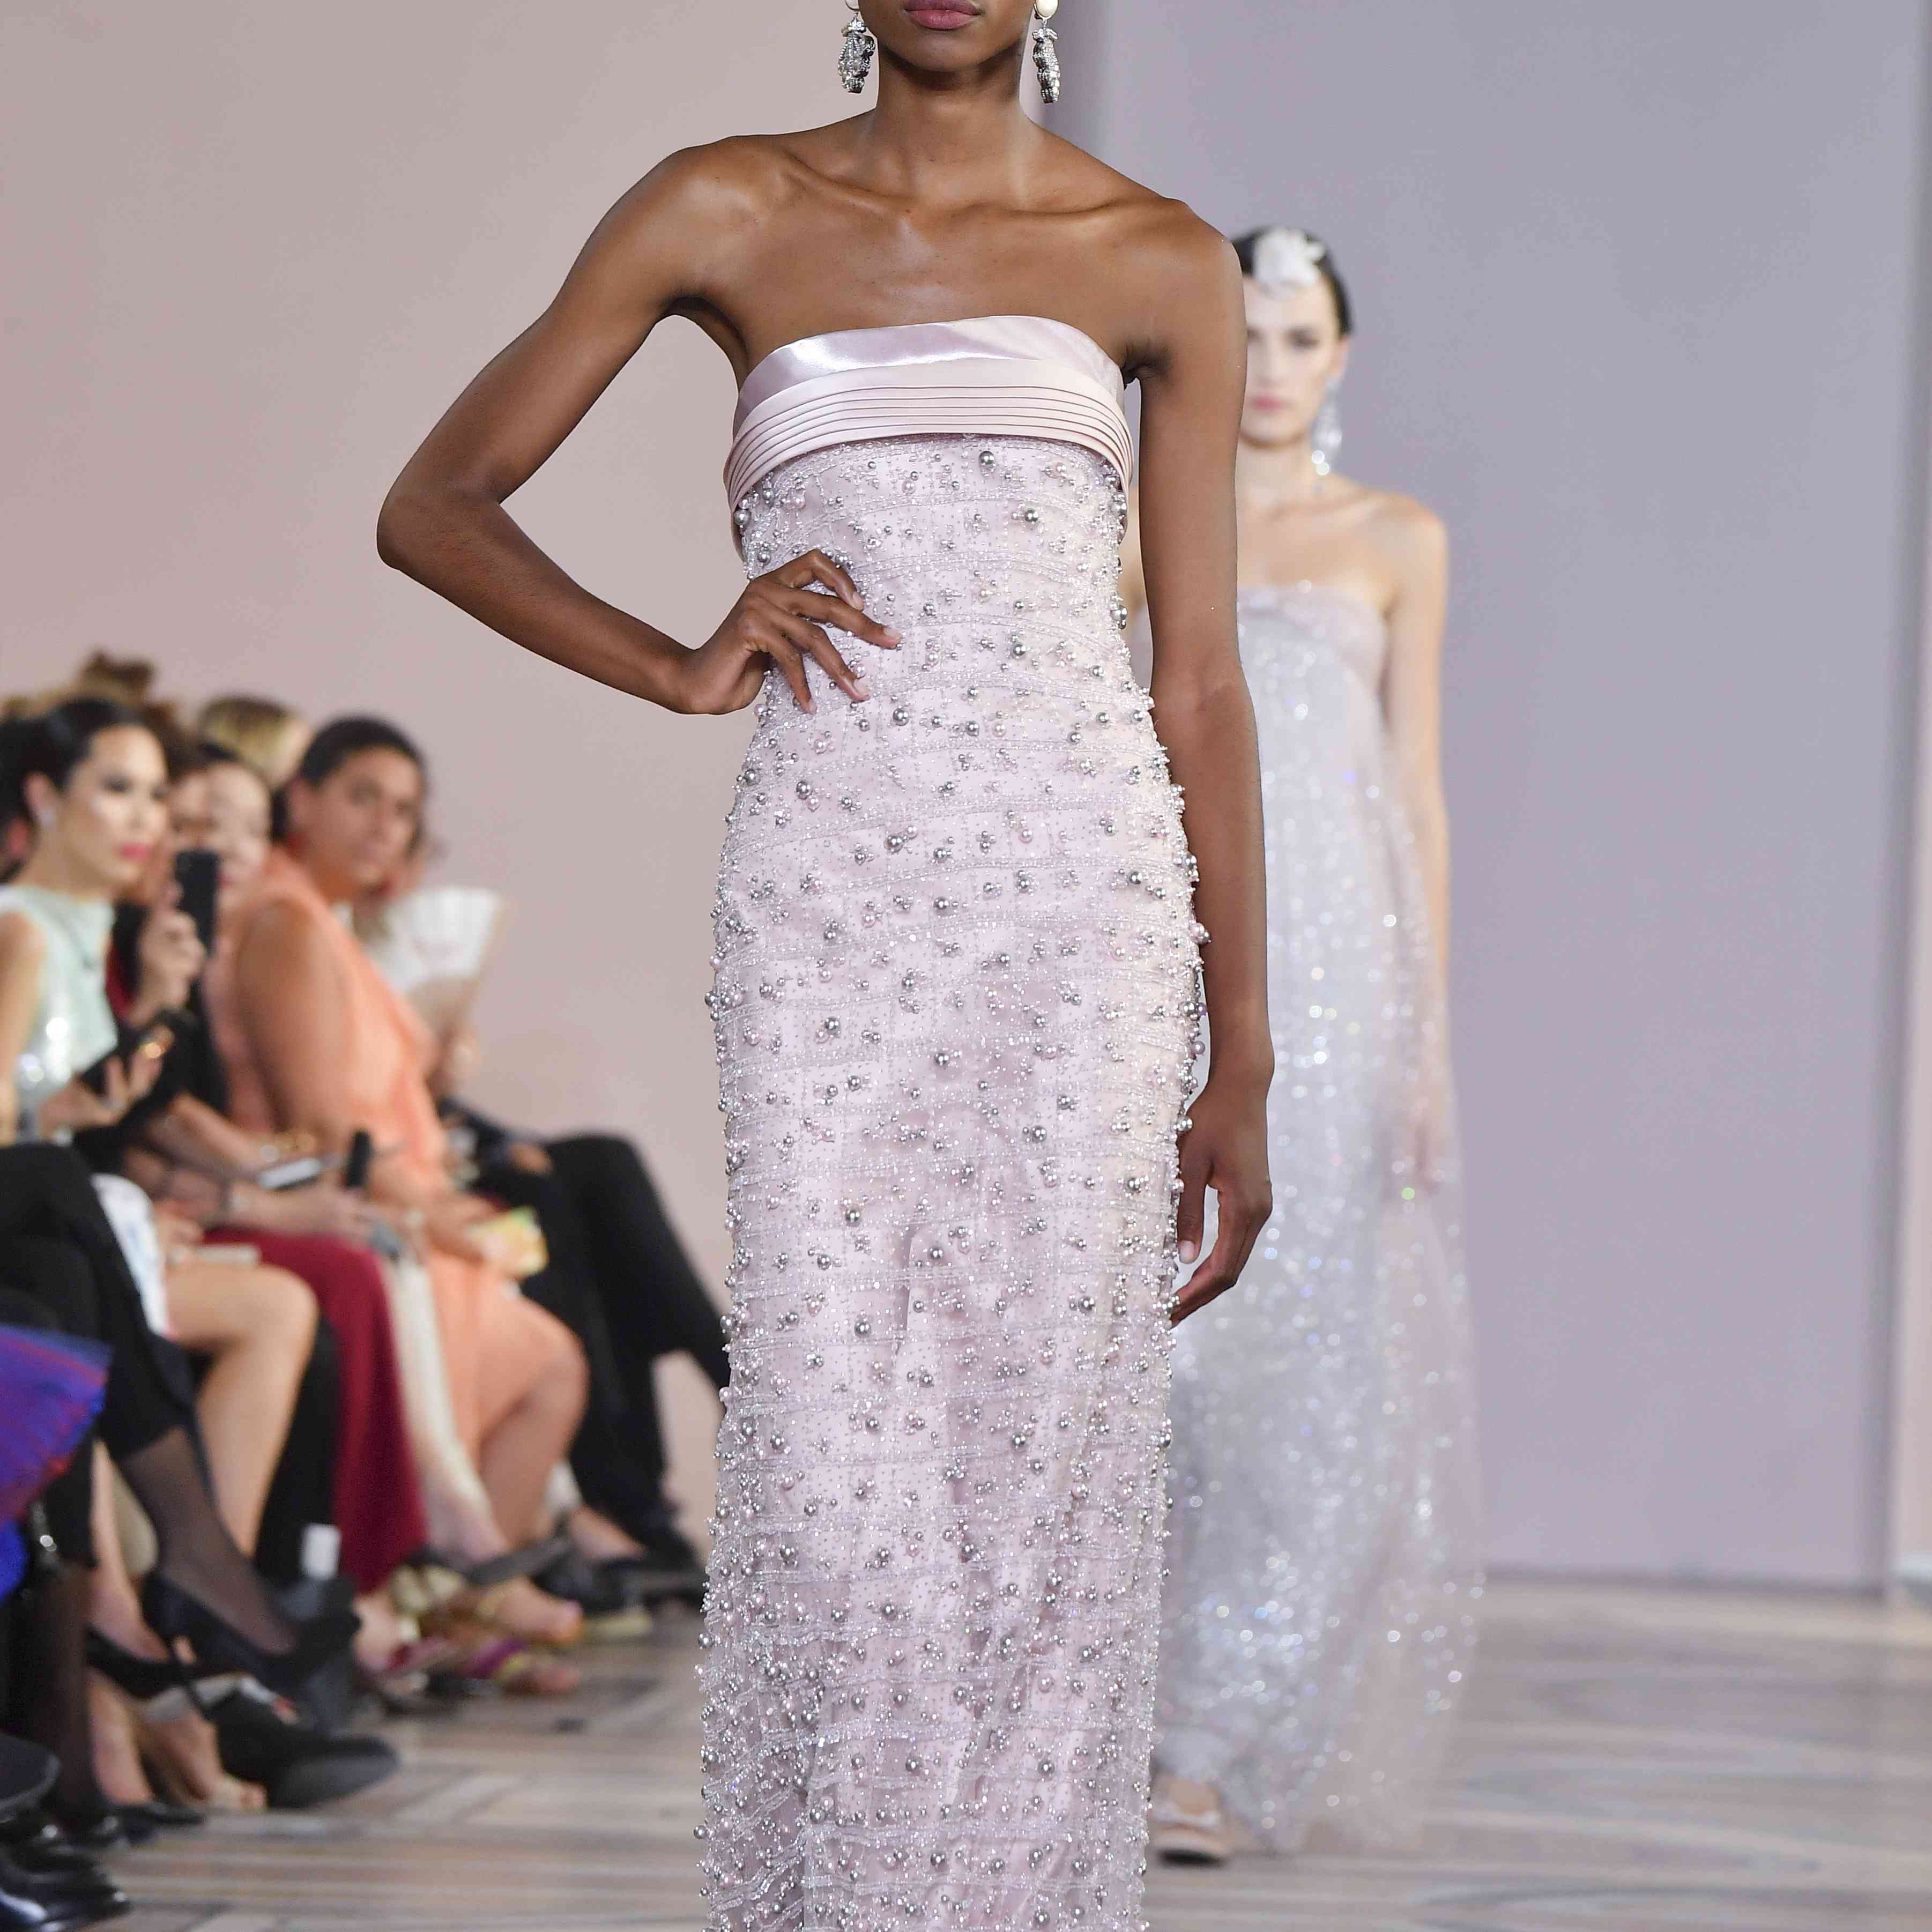 A model walks the runway in a strapless, floral embroidered, lavender gown